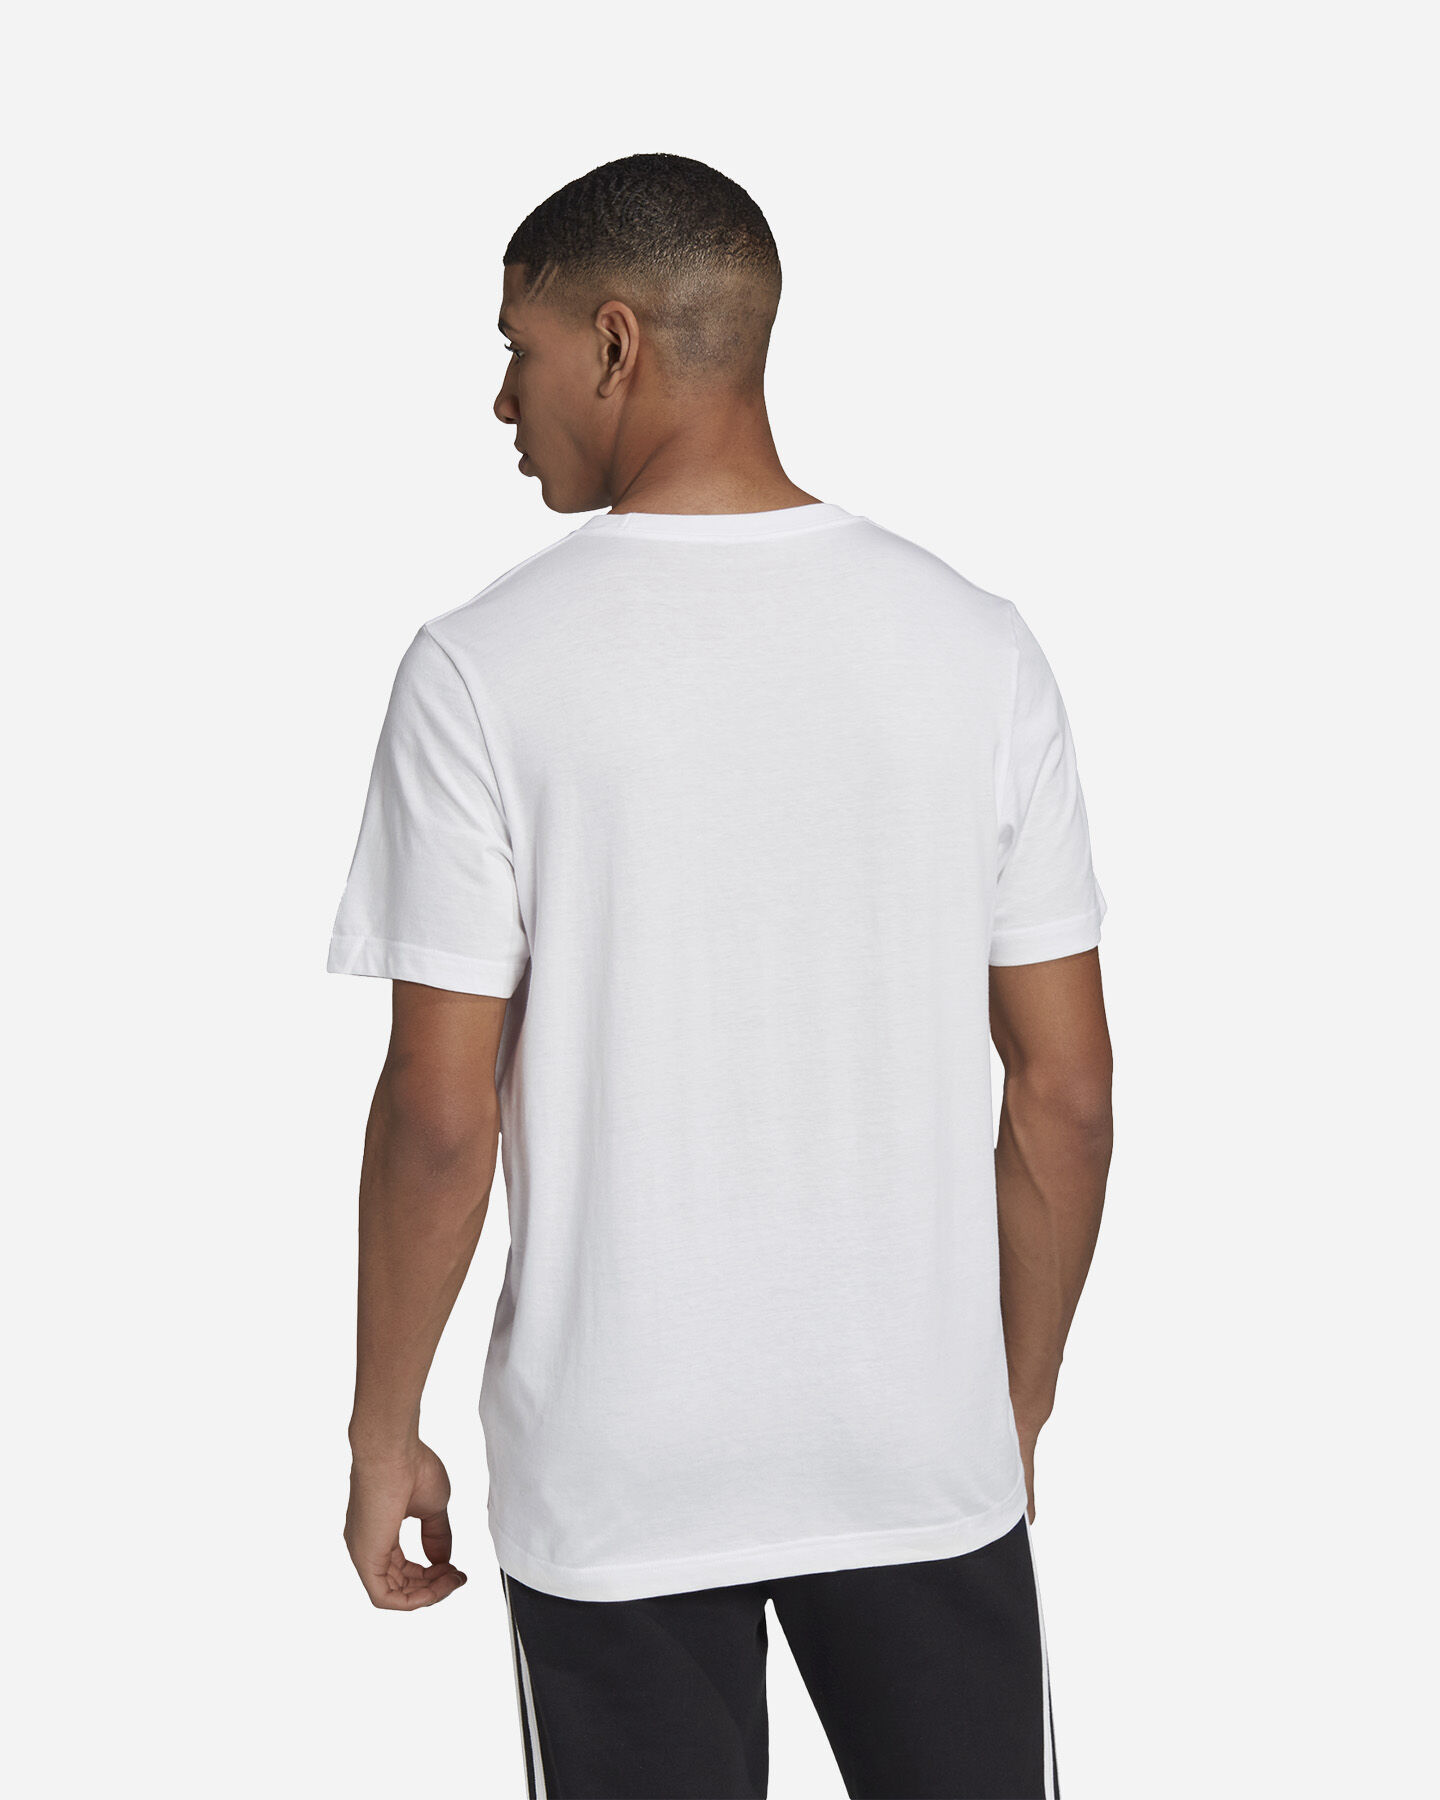 T-Shirt ADIDAS SMALL LOGO M S5210267 scatto 4